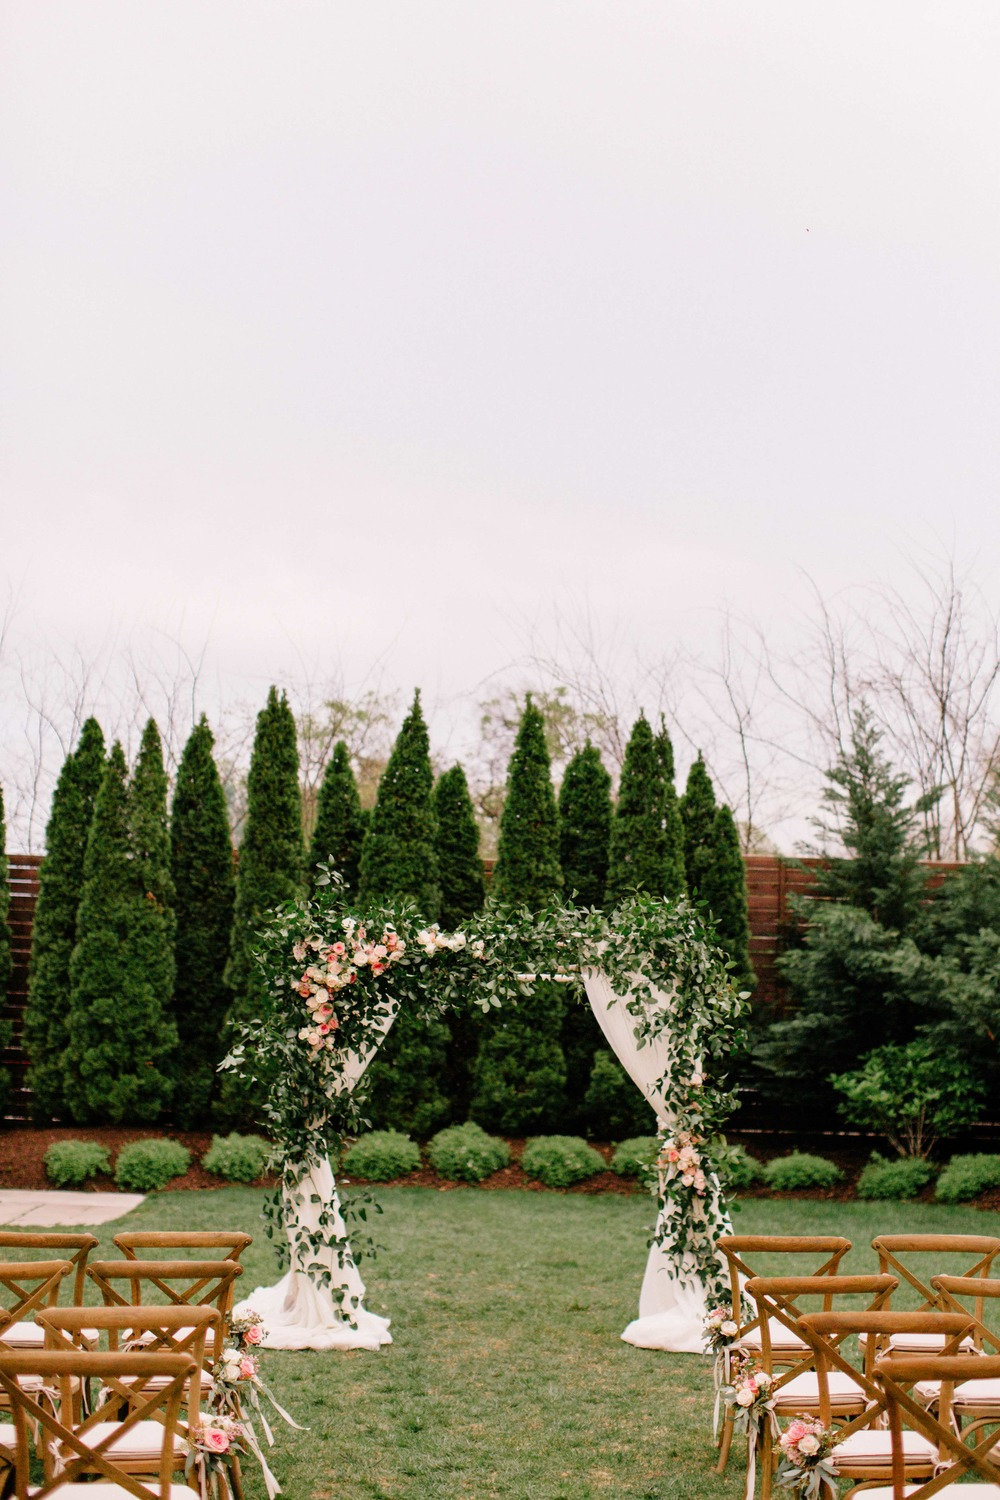 Lush greenery wedding chuppah / arch, Nashville Floral Design